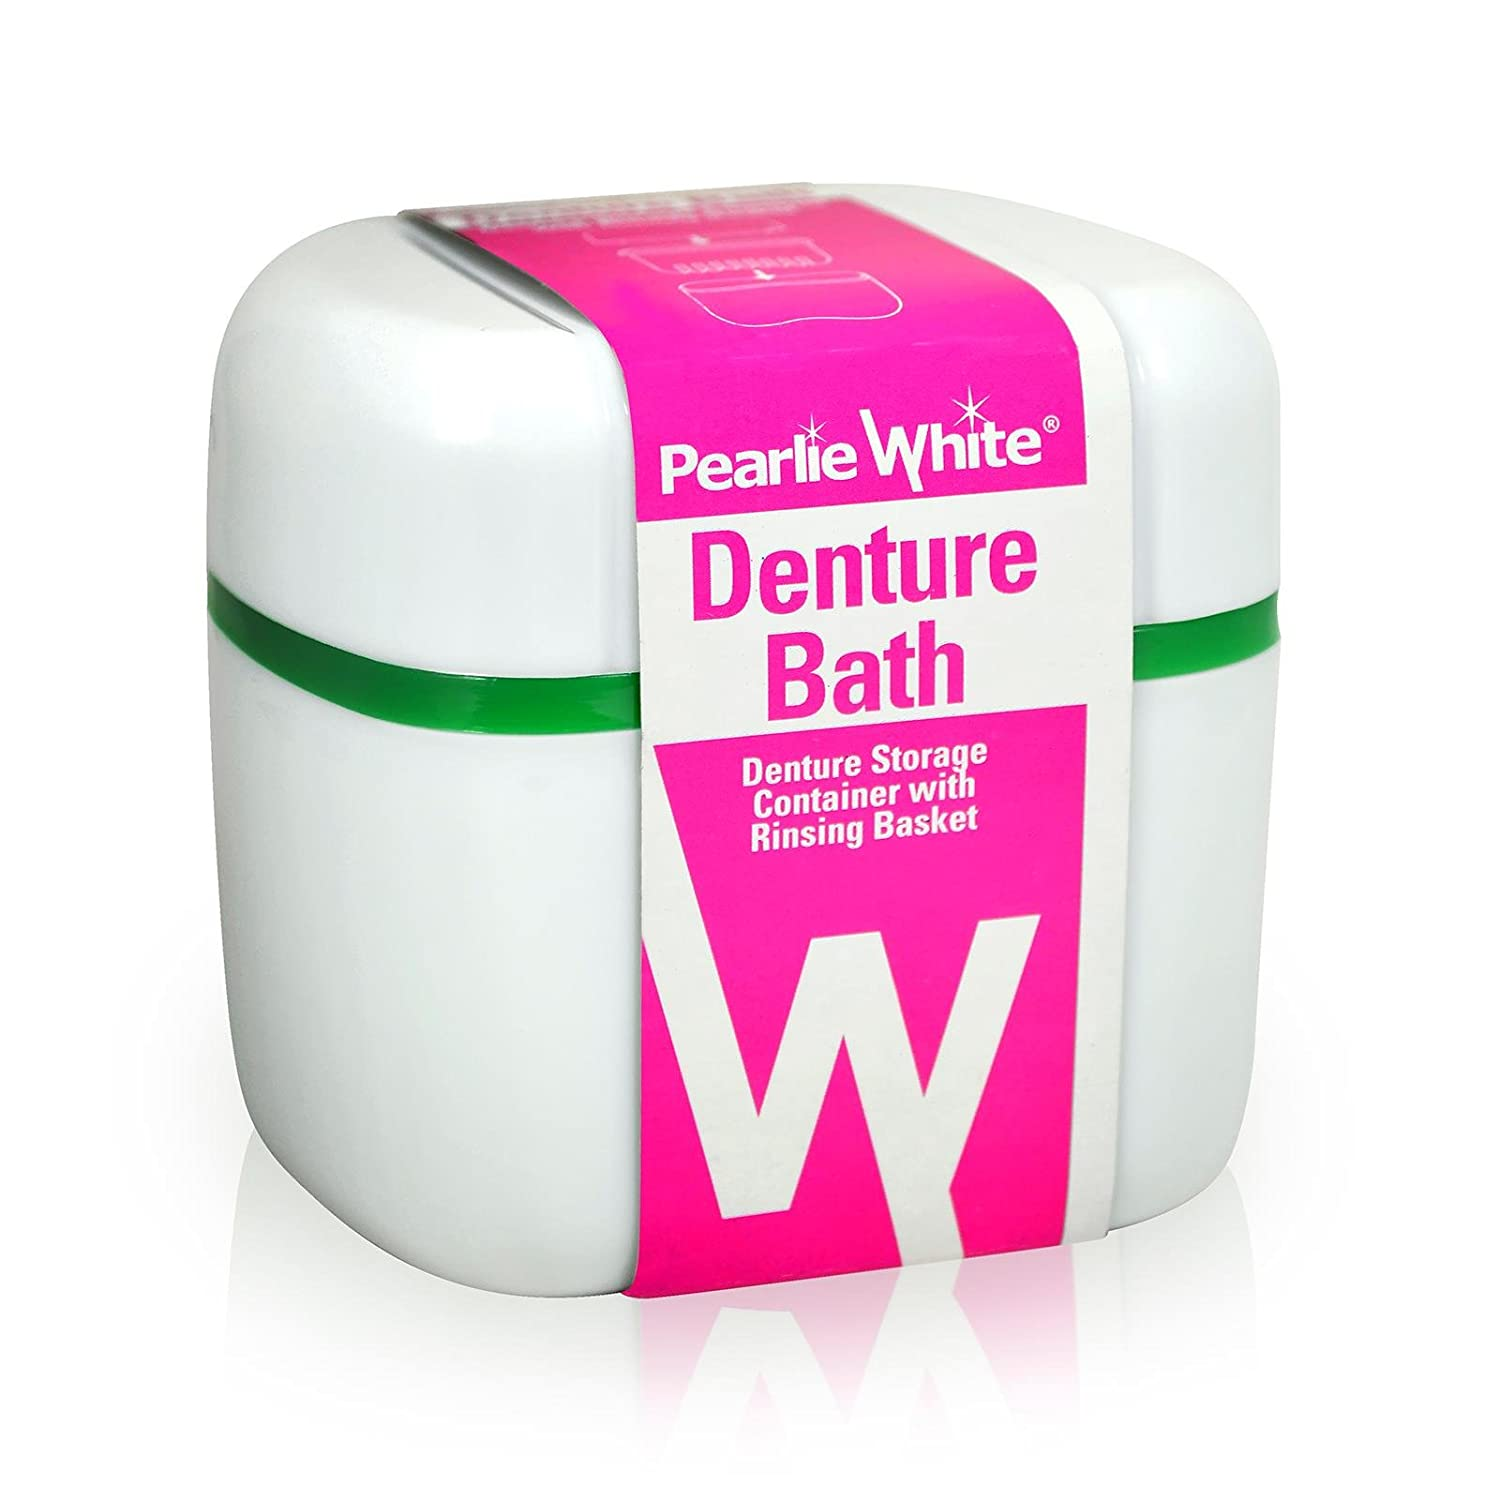 Pearlie White Denture Container With Rinsing Basket